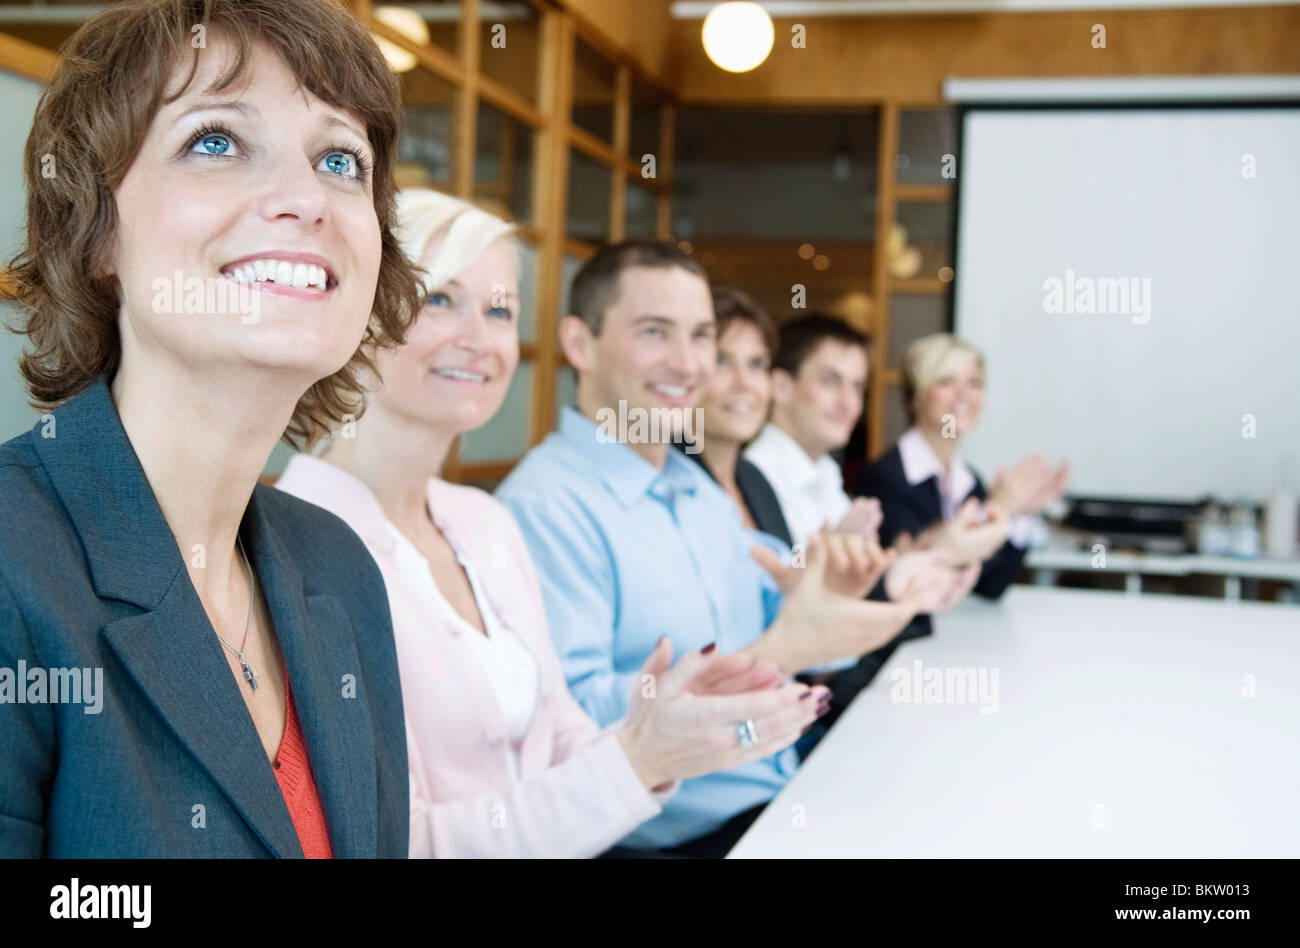 Clapping one's hands - Stock Image